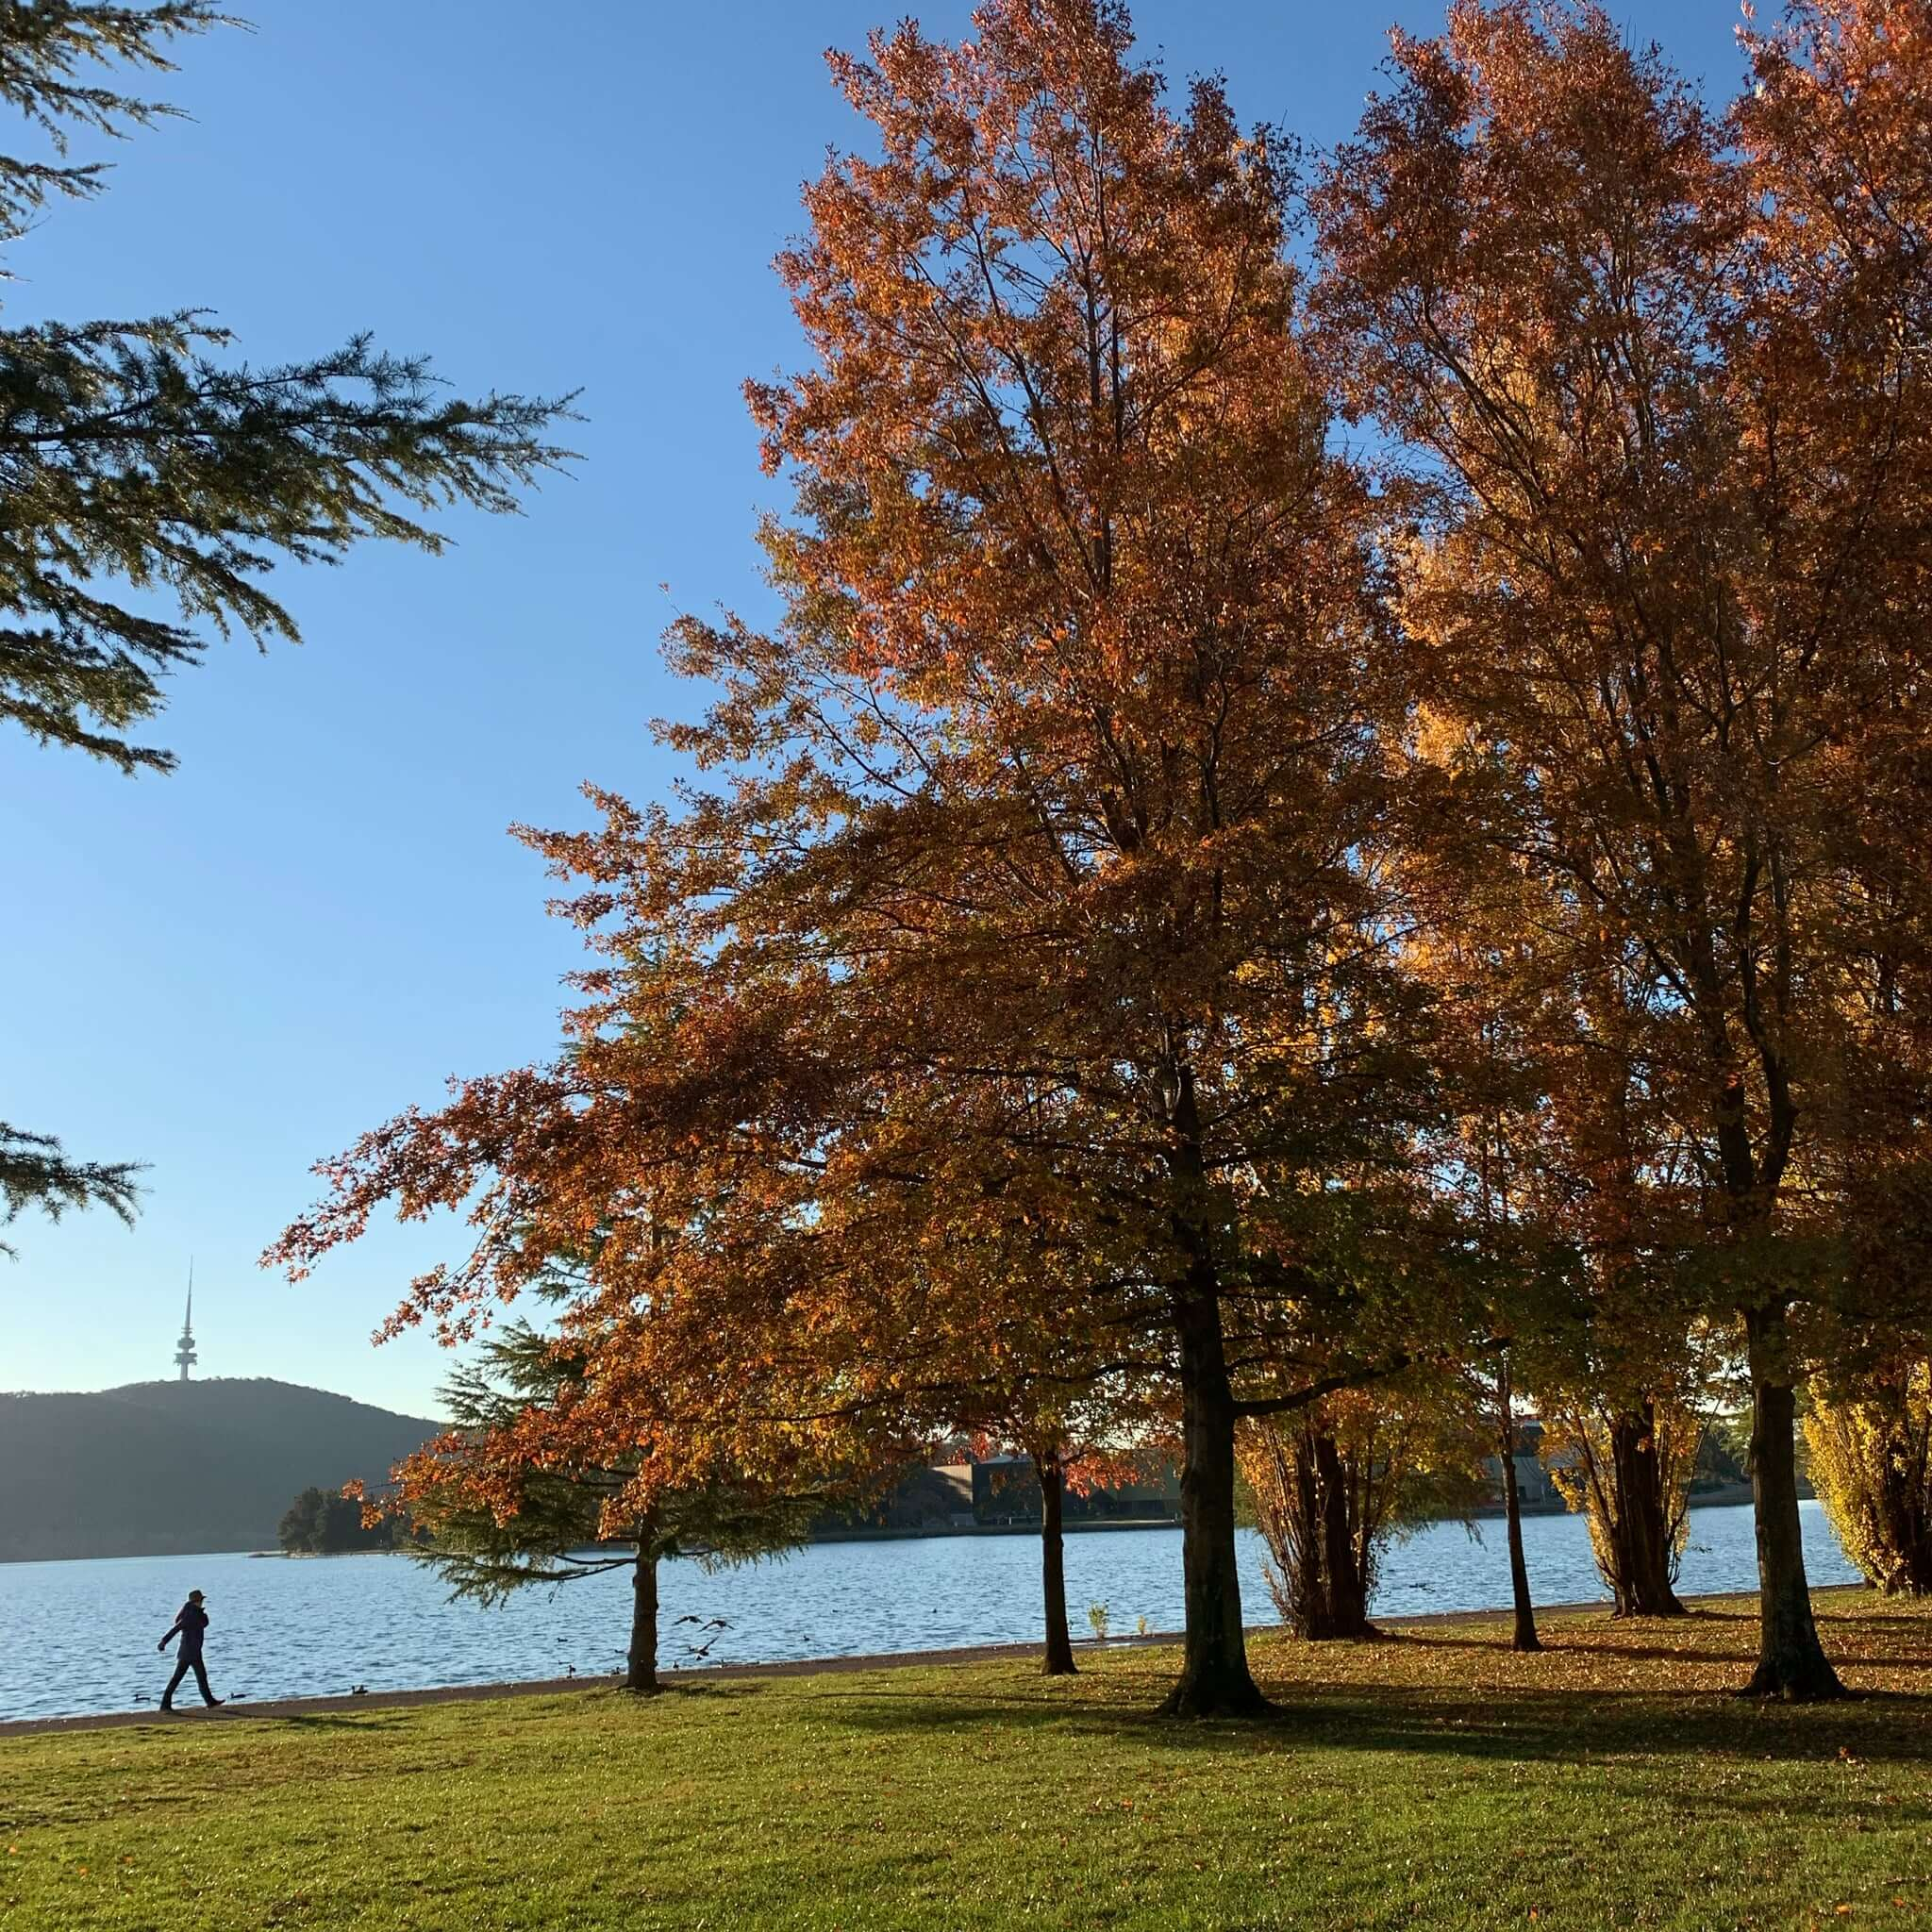 Lake Burley Griffin, Canberra on an autumn afternoon